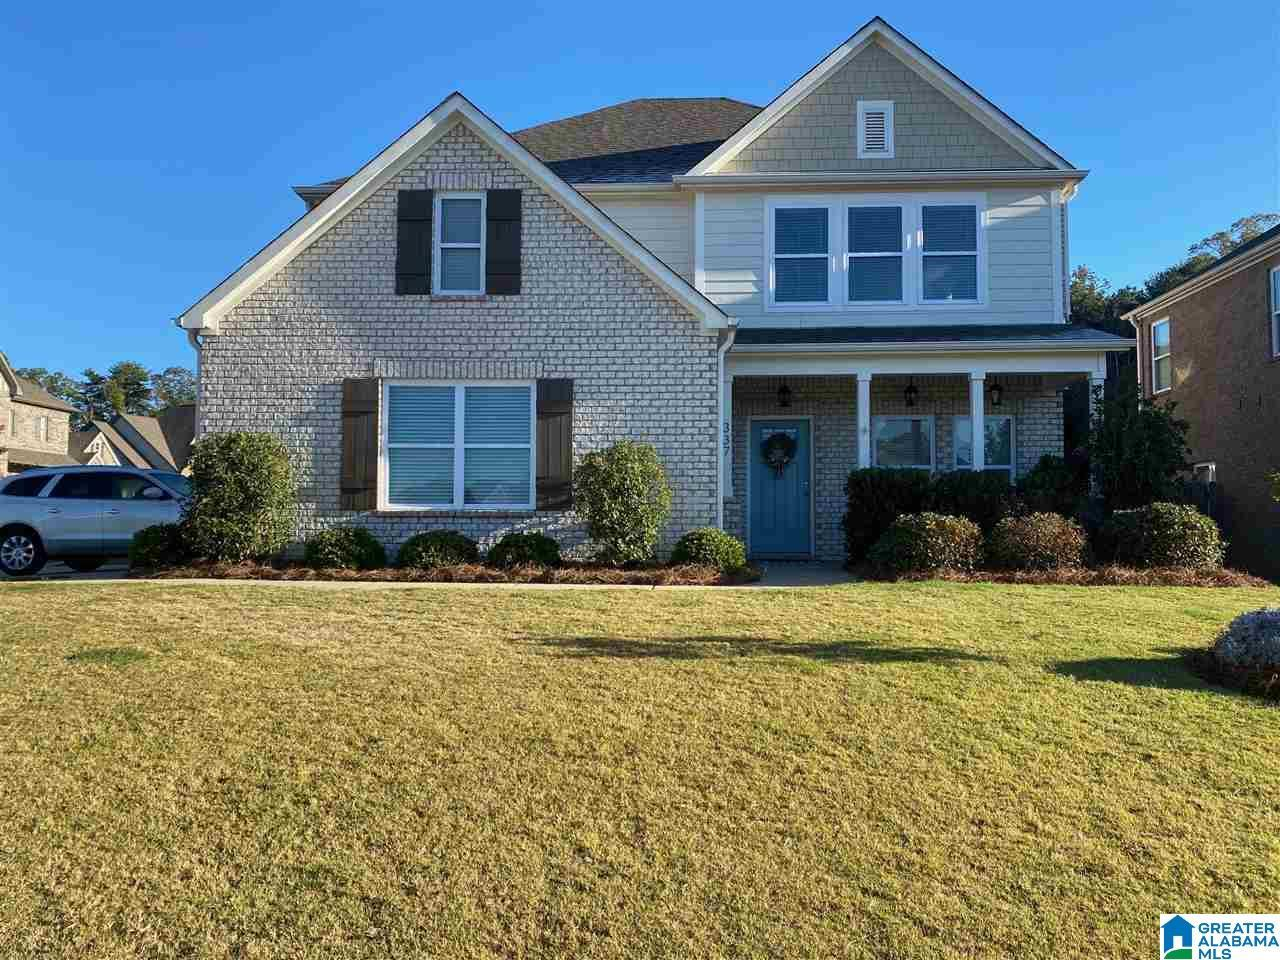 337 ROCK DR, Gardendale, AL 35071 - MLS#: 900345